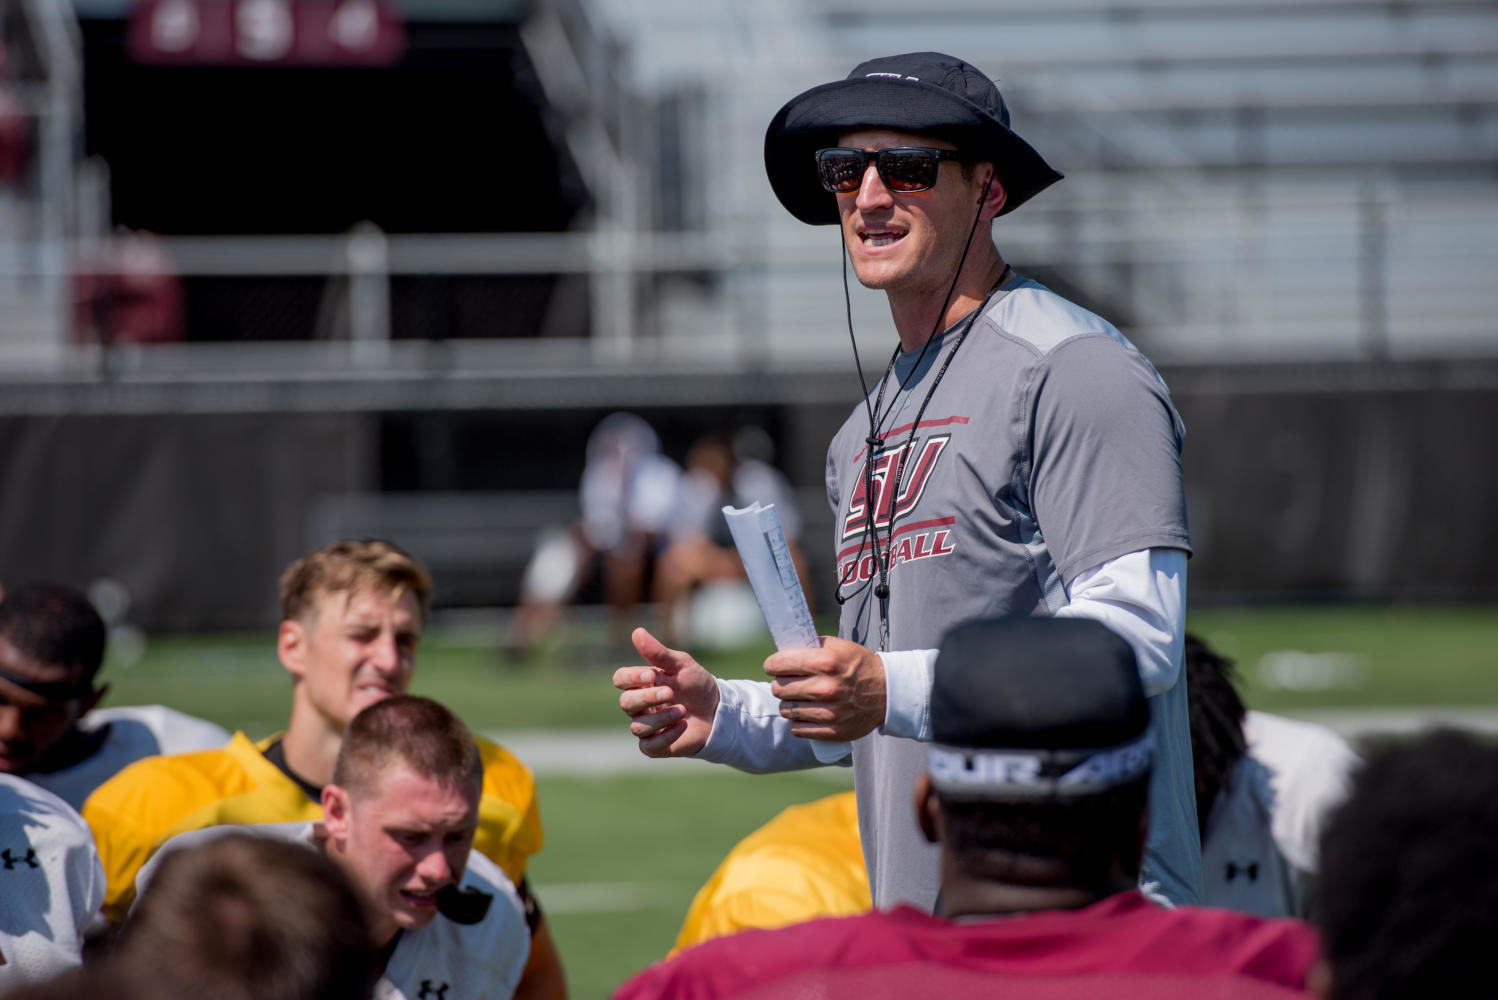 SIU+Fooball+head+coach+Nick+Hill+talks+to+members+of+the+Saluki+football+team+after+their+first+fall+scrimmage%2C+Saturday%2C+Aug.+11%2C+2017%2C+at+Saluki+Stadium.